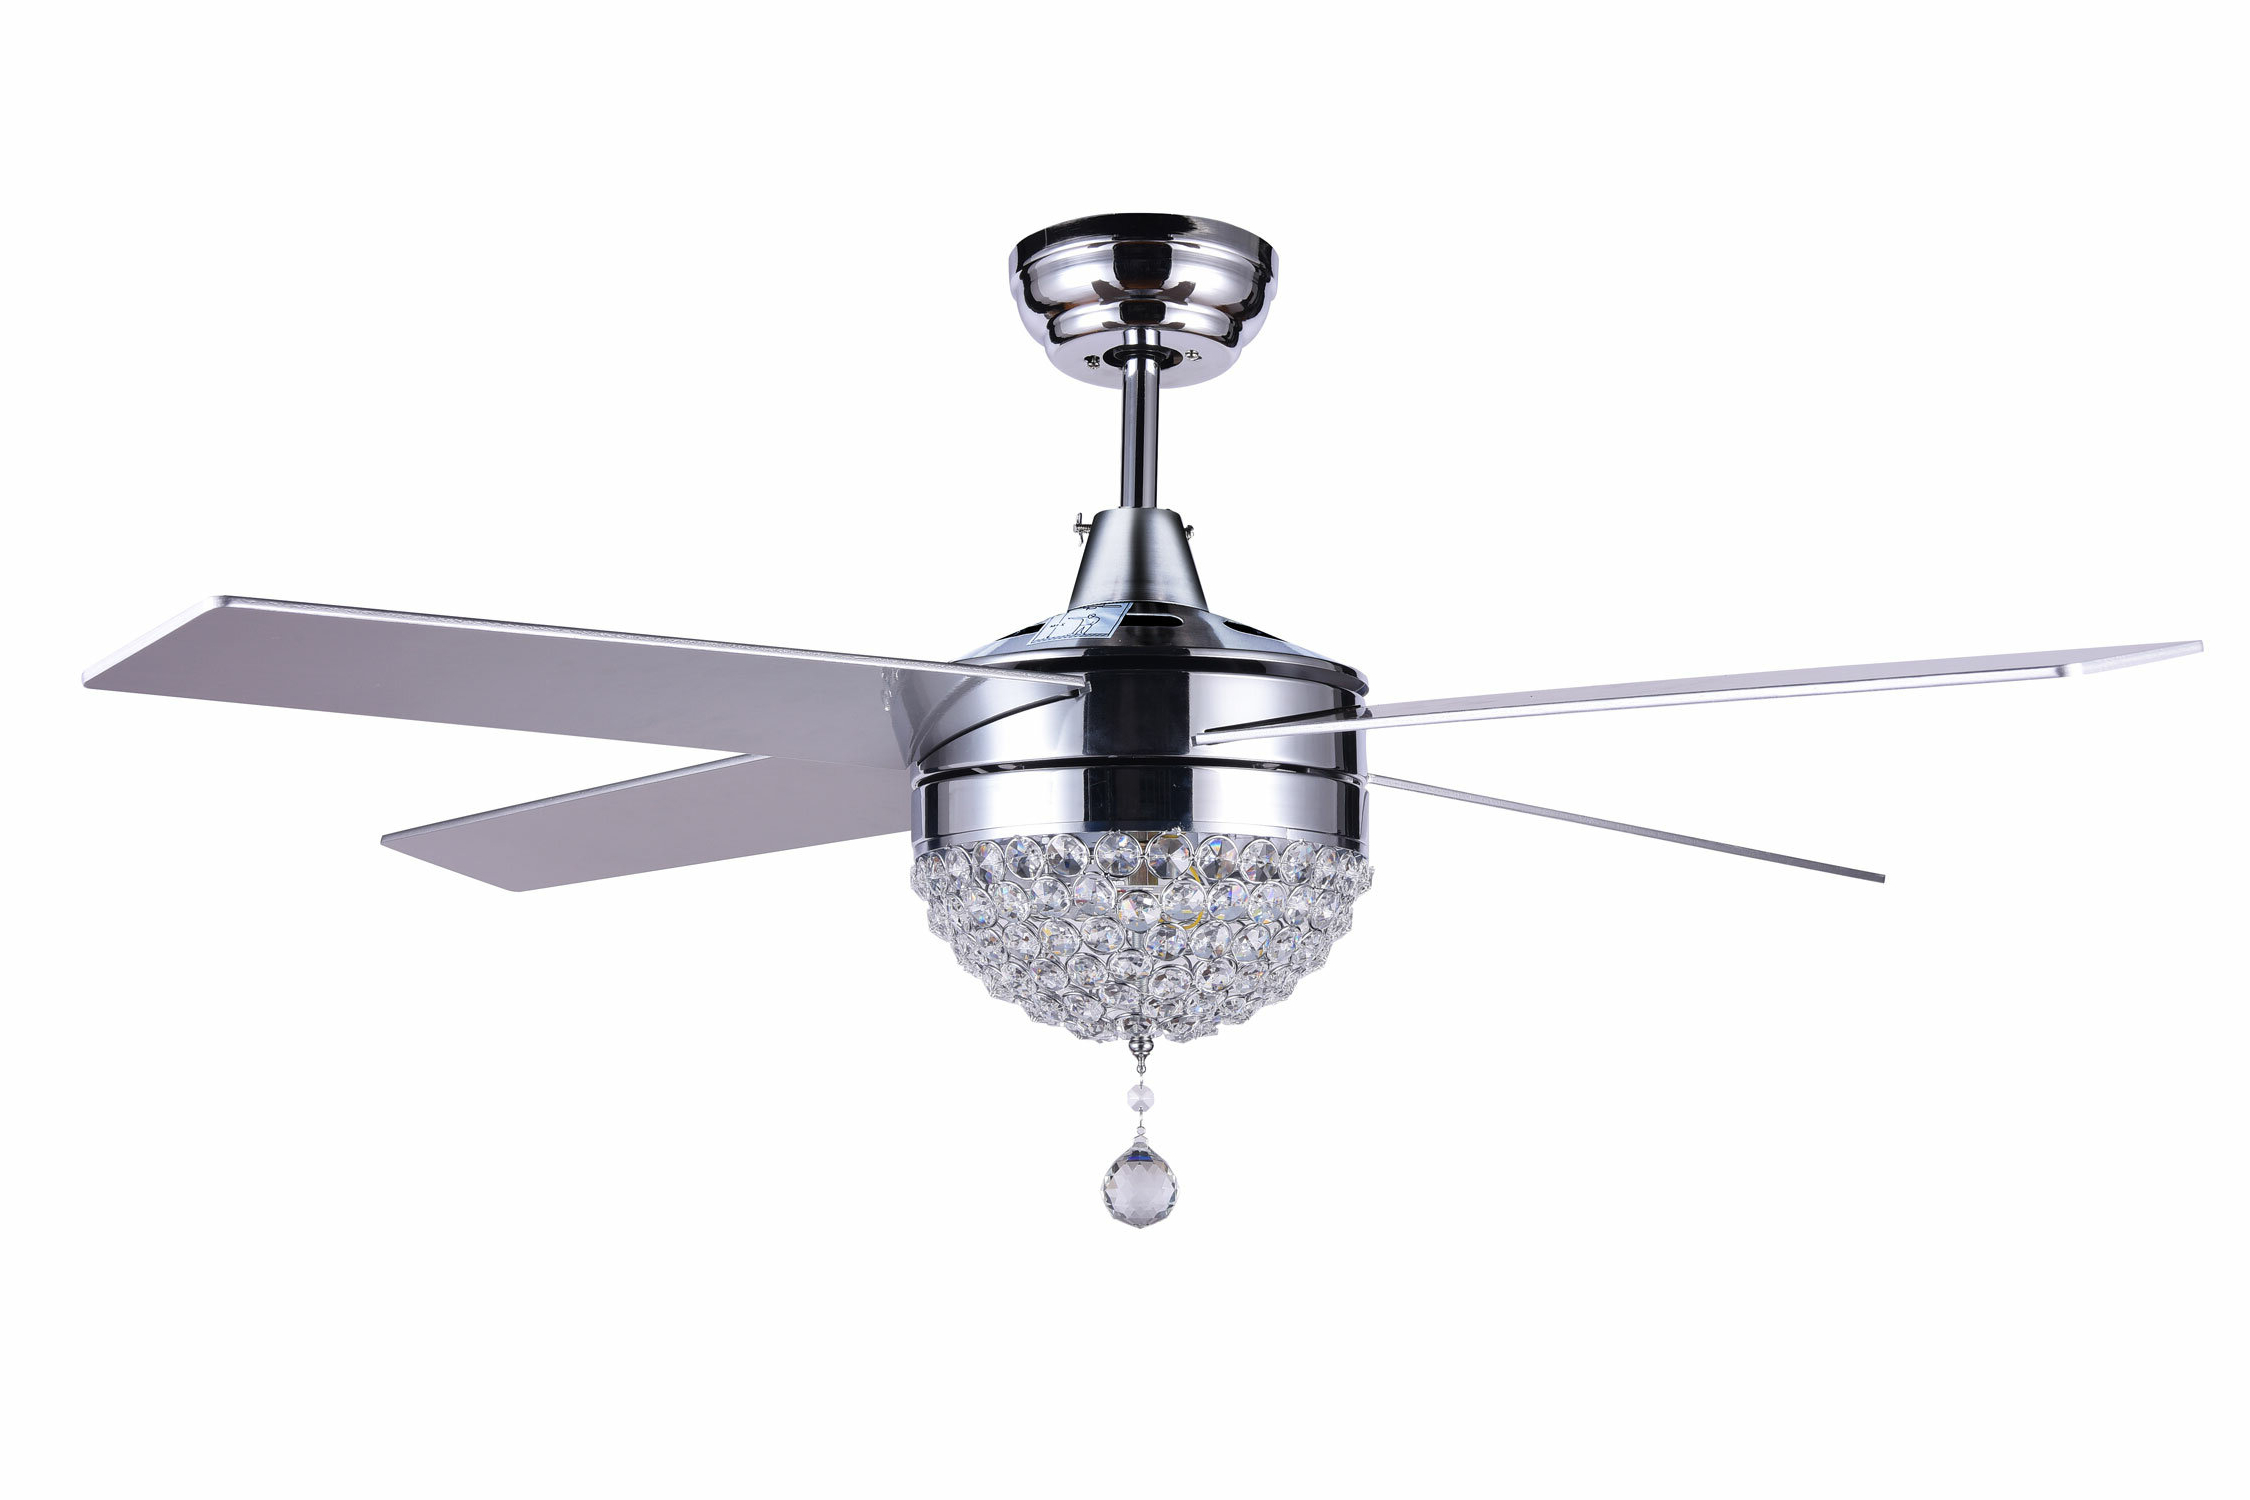 Aalin 4 Blade Led Ceiling Fan With Remote, Light Kit Included Inside 2019 Cason 4 Blade Ceiling Fans (Gallery 16 of 20)